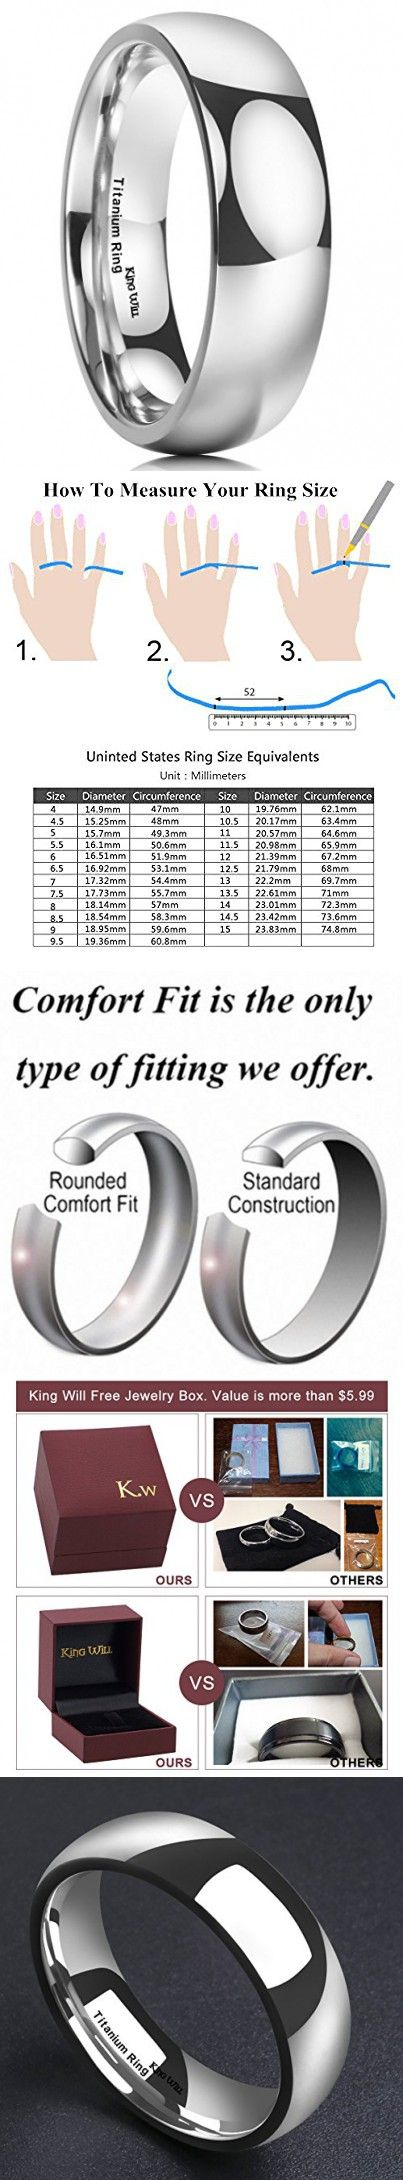 king will 7mm titanium ring domed polished comfort fit wedding band for men 125